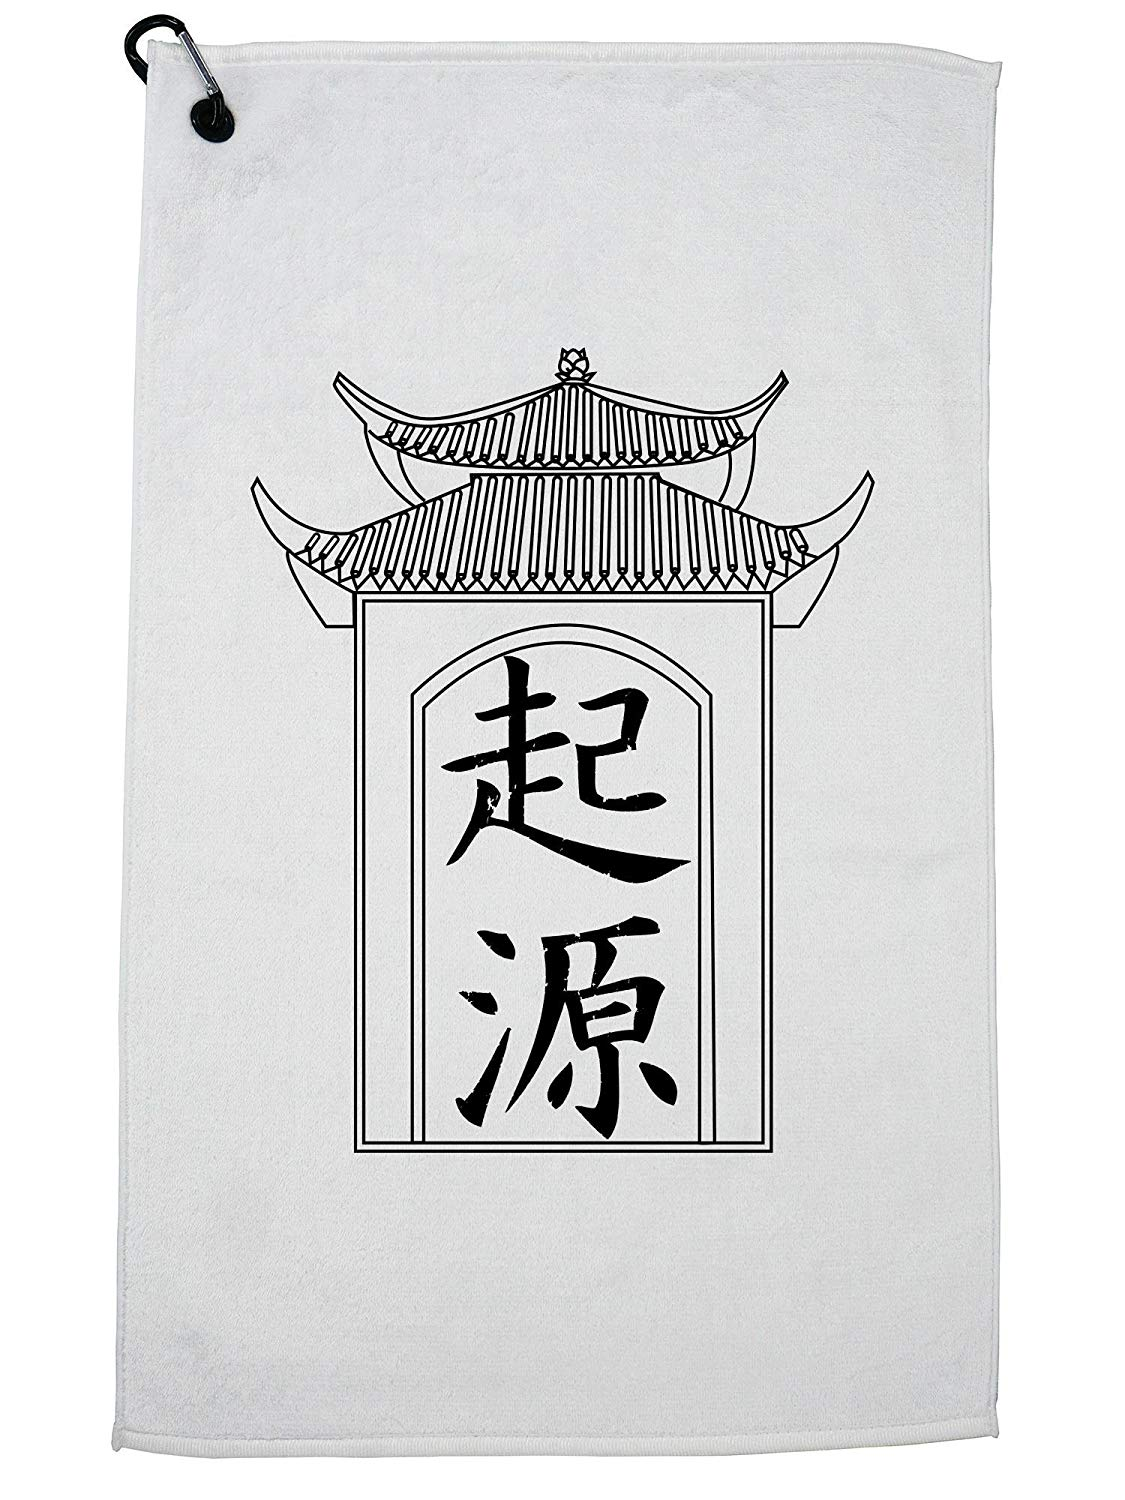 Hollywood Thread New Beginning - Chinese/Japanese Asian Kanji Characters Golf Towel with Carabiner Clip